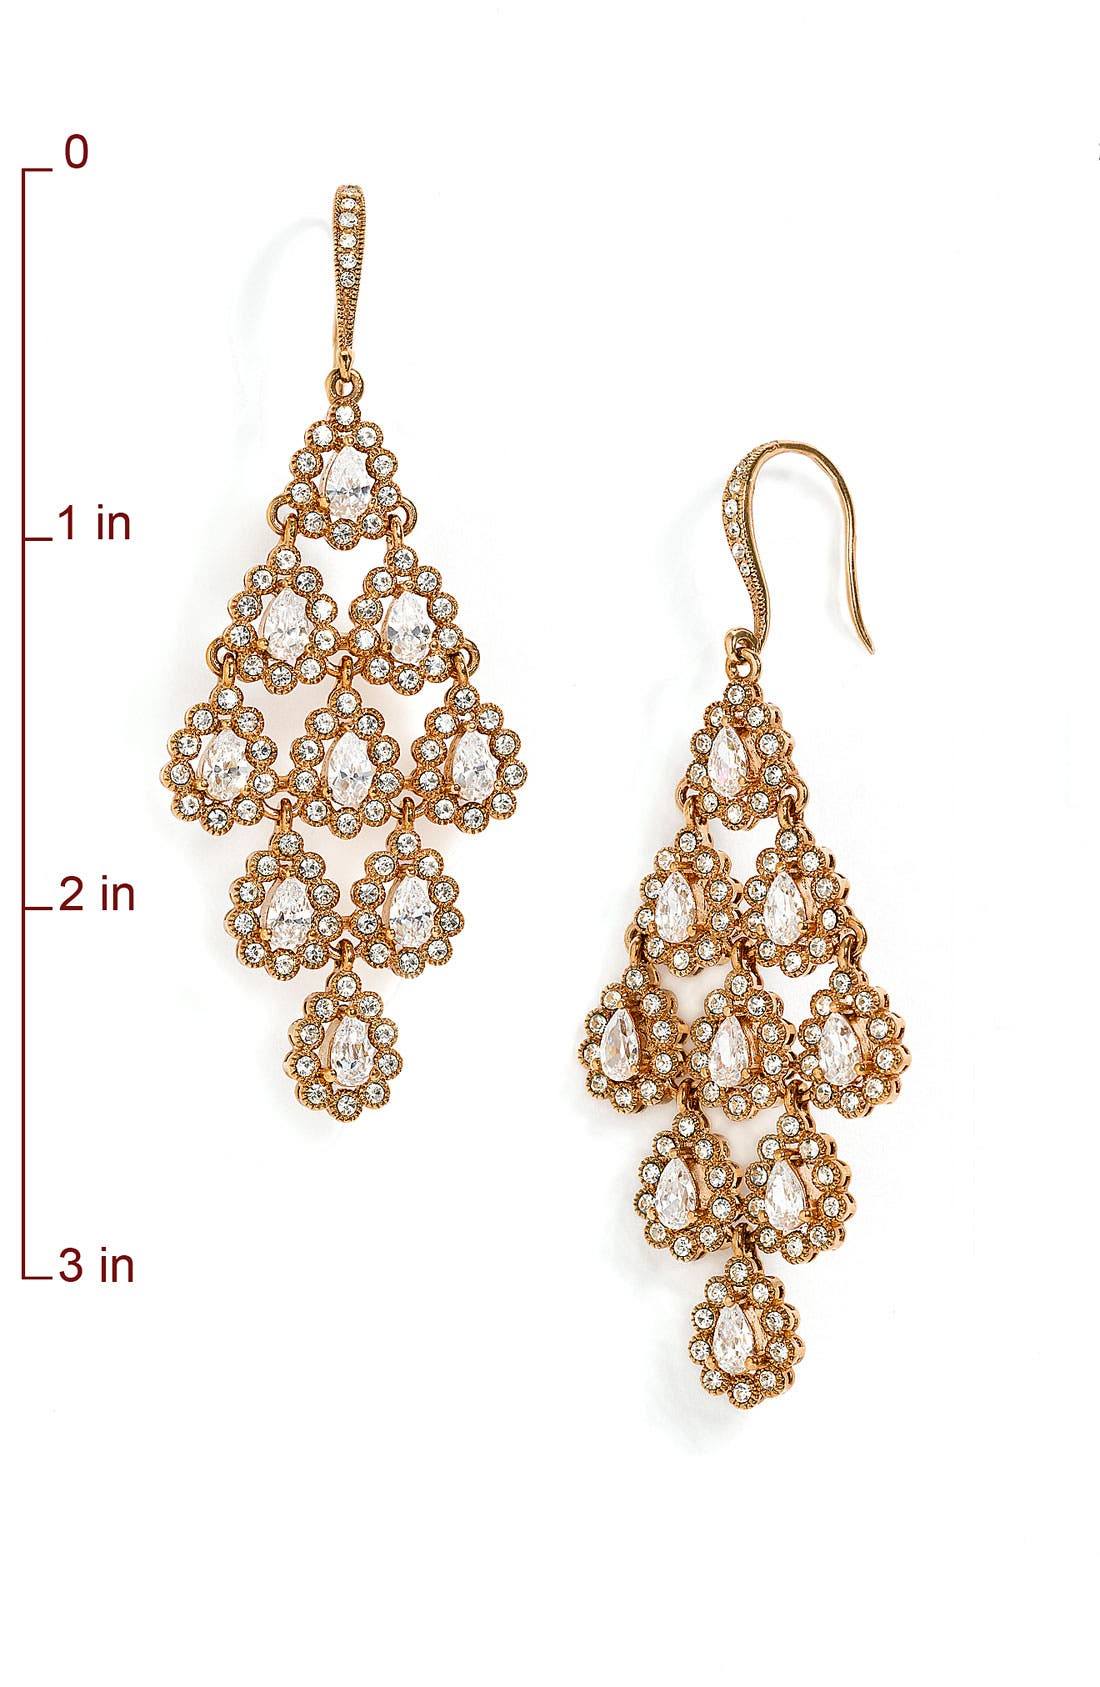 Tiered Chandelier Earrings,                             Alternate thumbnail 7, color,                             Rose Gold